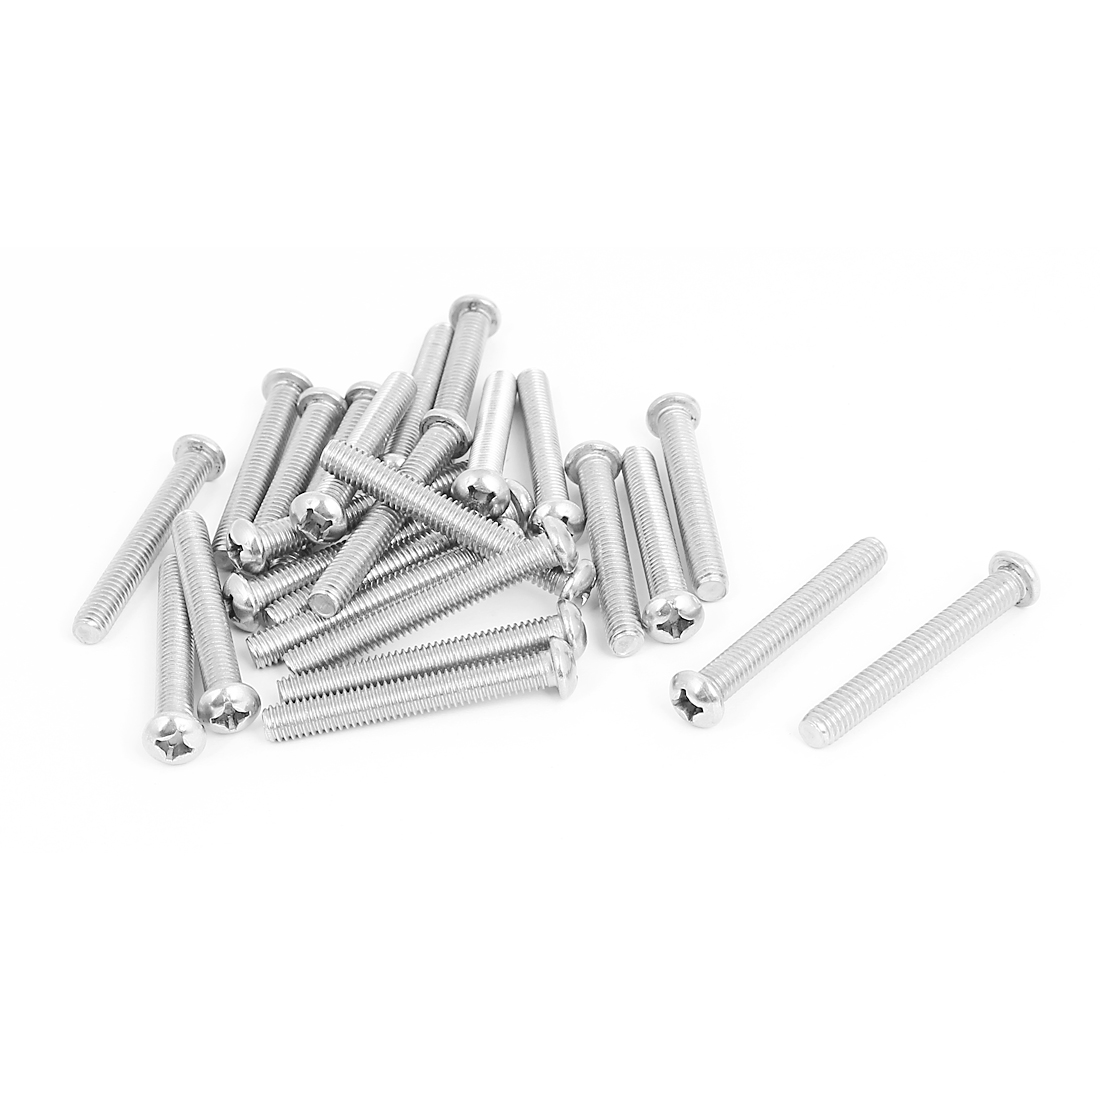 M6x45mm Stainless Steel Phillips Round Pan Head Machine Screws 25pcs